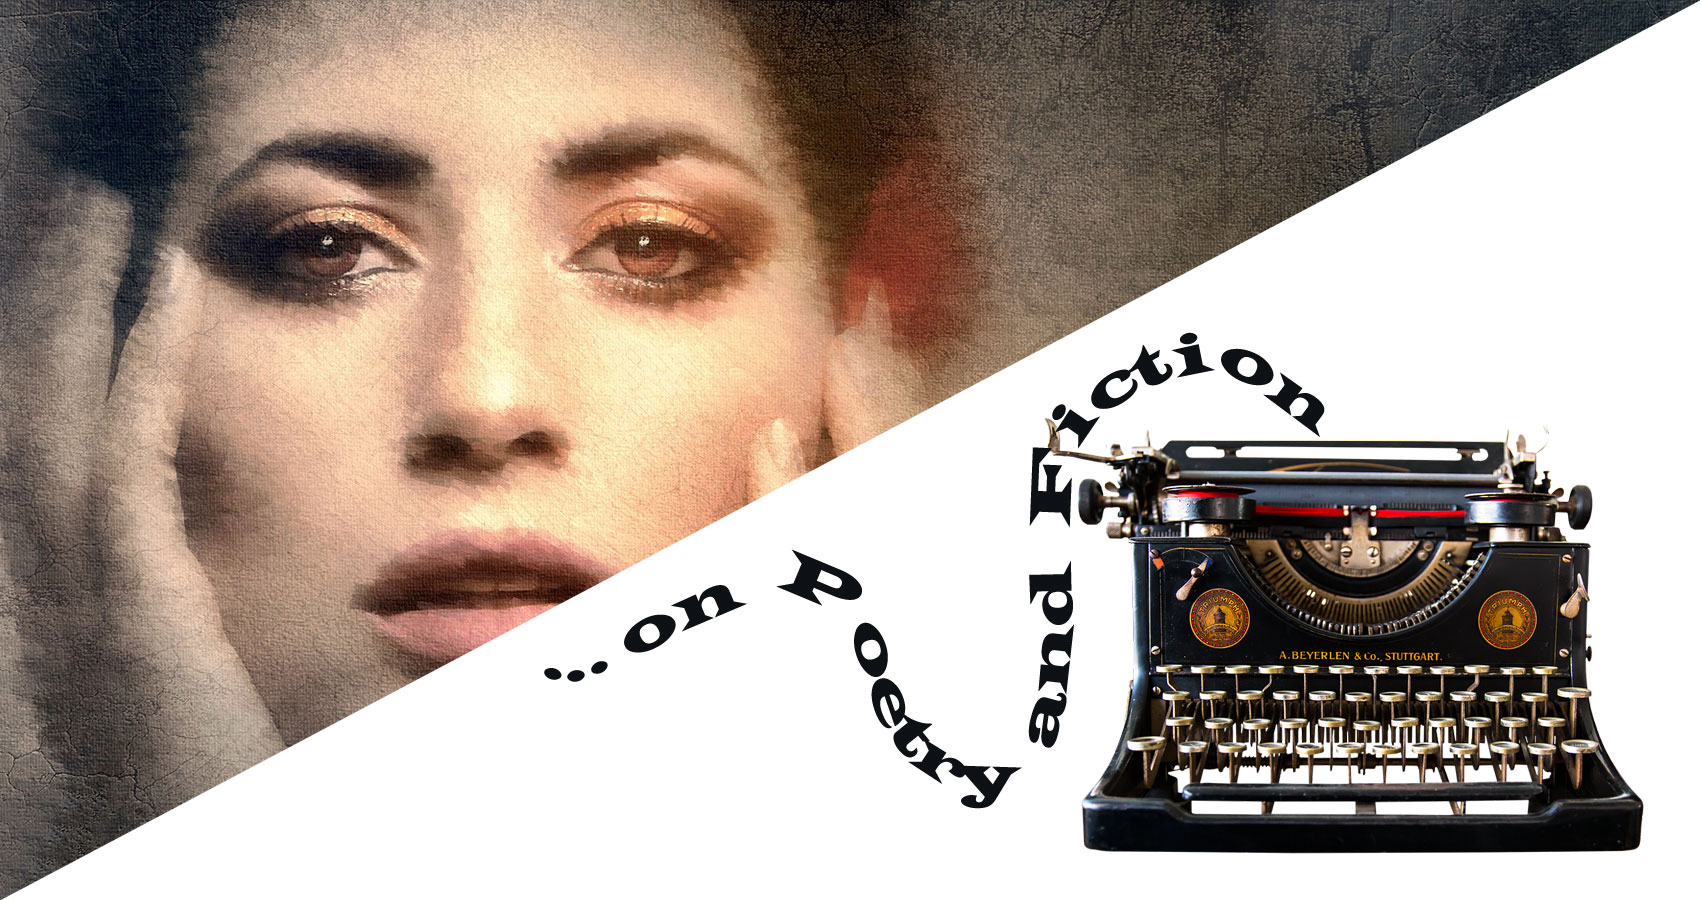 """...on Poetry and Fiction - Just """"One Word"""" Away (""""Portrait""""), editorial by Phyllis P. Colucci at Spillwords.com"""